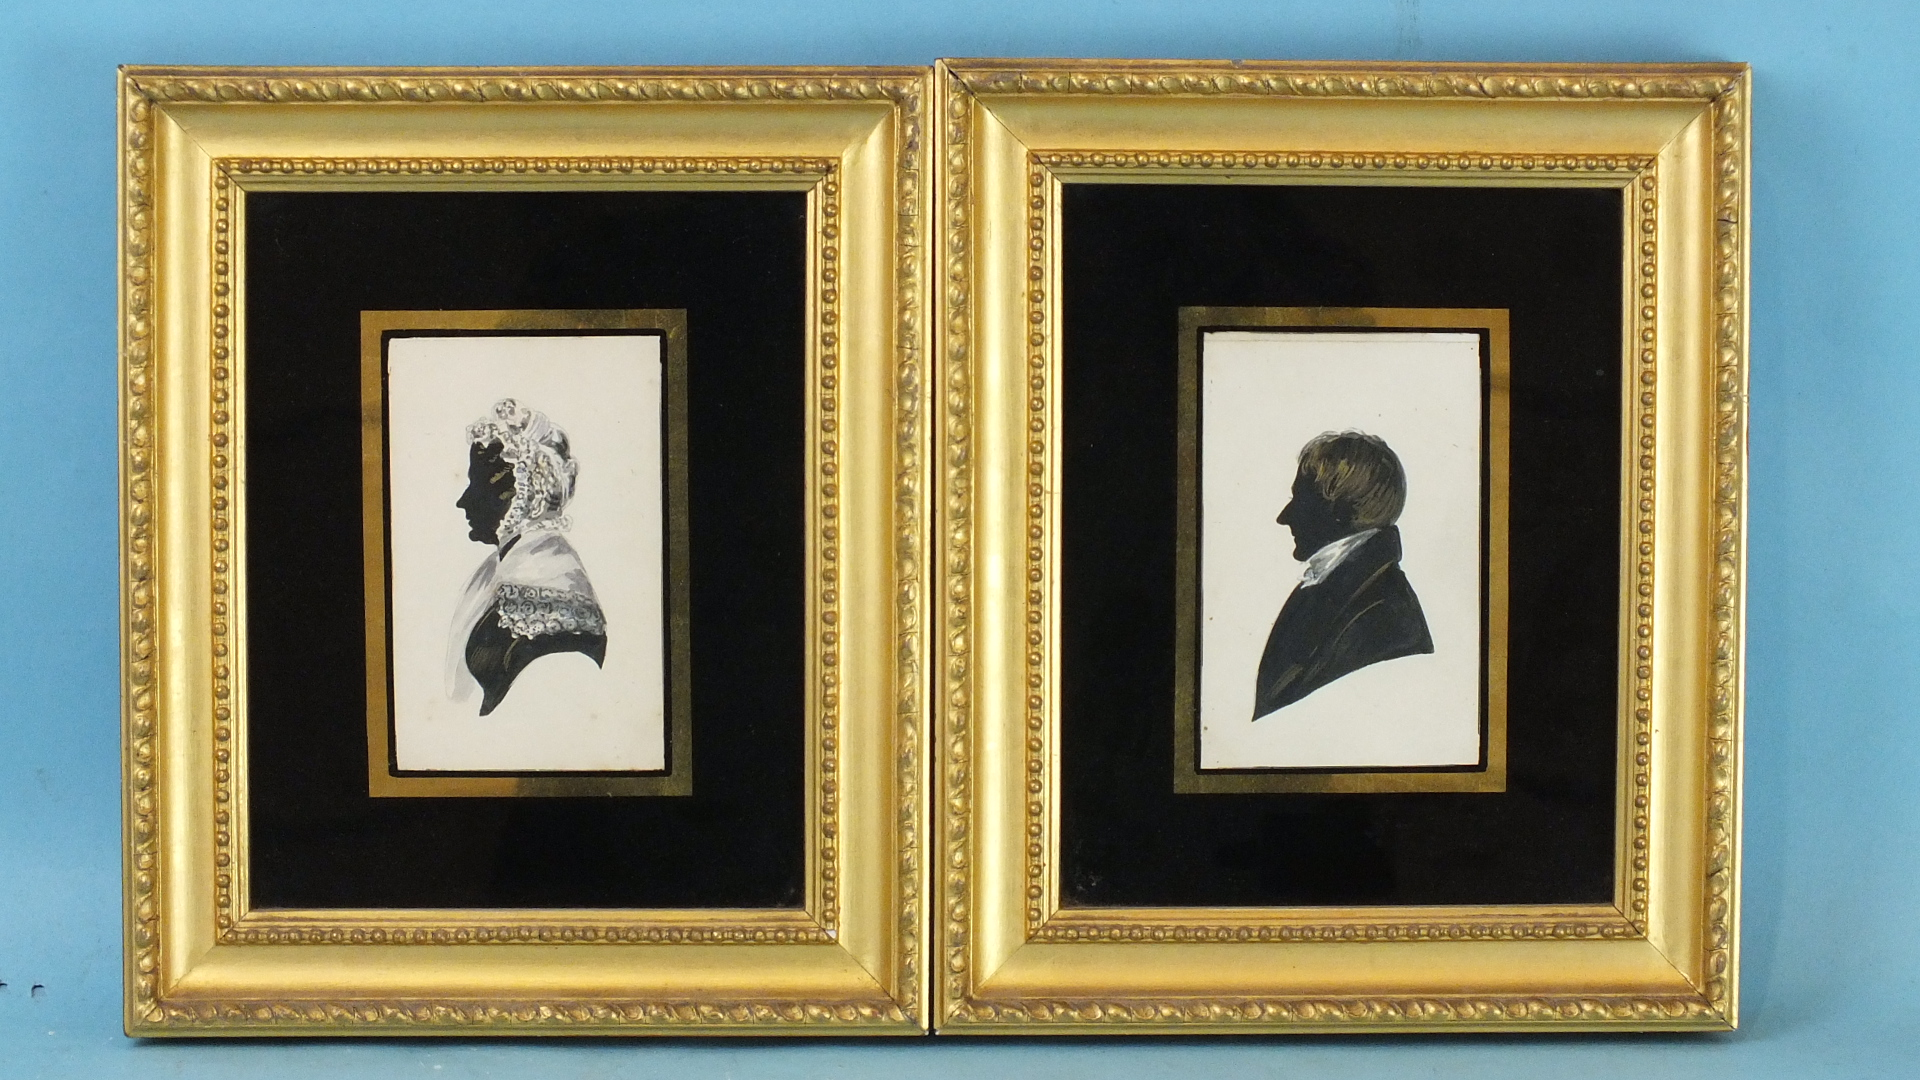 Lot 25 - A portrait silhouette 'NOBLE JOHNSON, MAYOR OF CORK', 1809, 11 x 8cm and a companion, 'ANNE